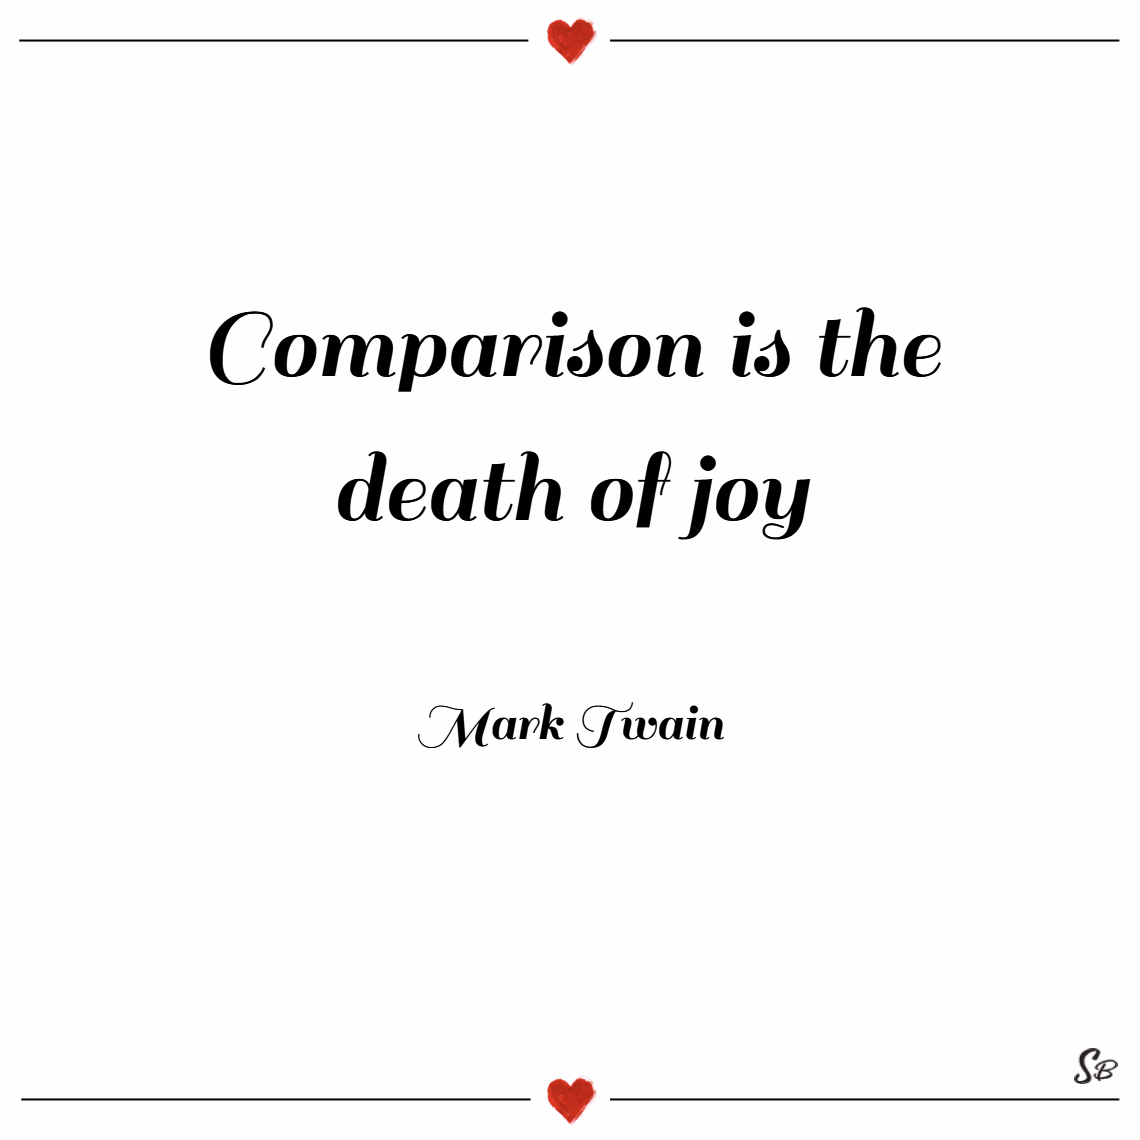 Comparison is the death of joy. – mark twain